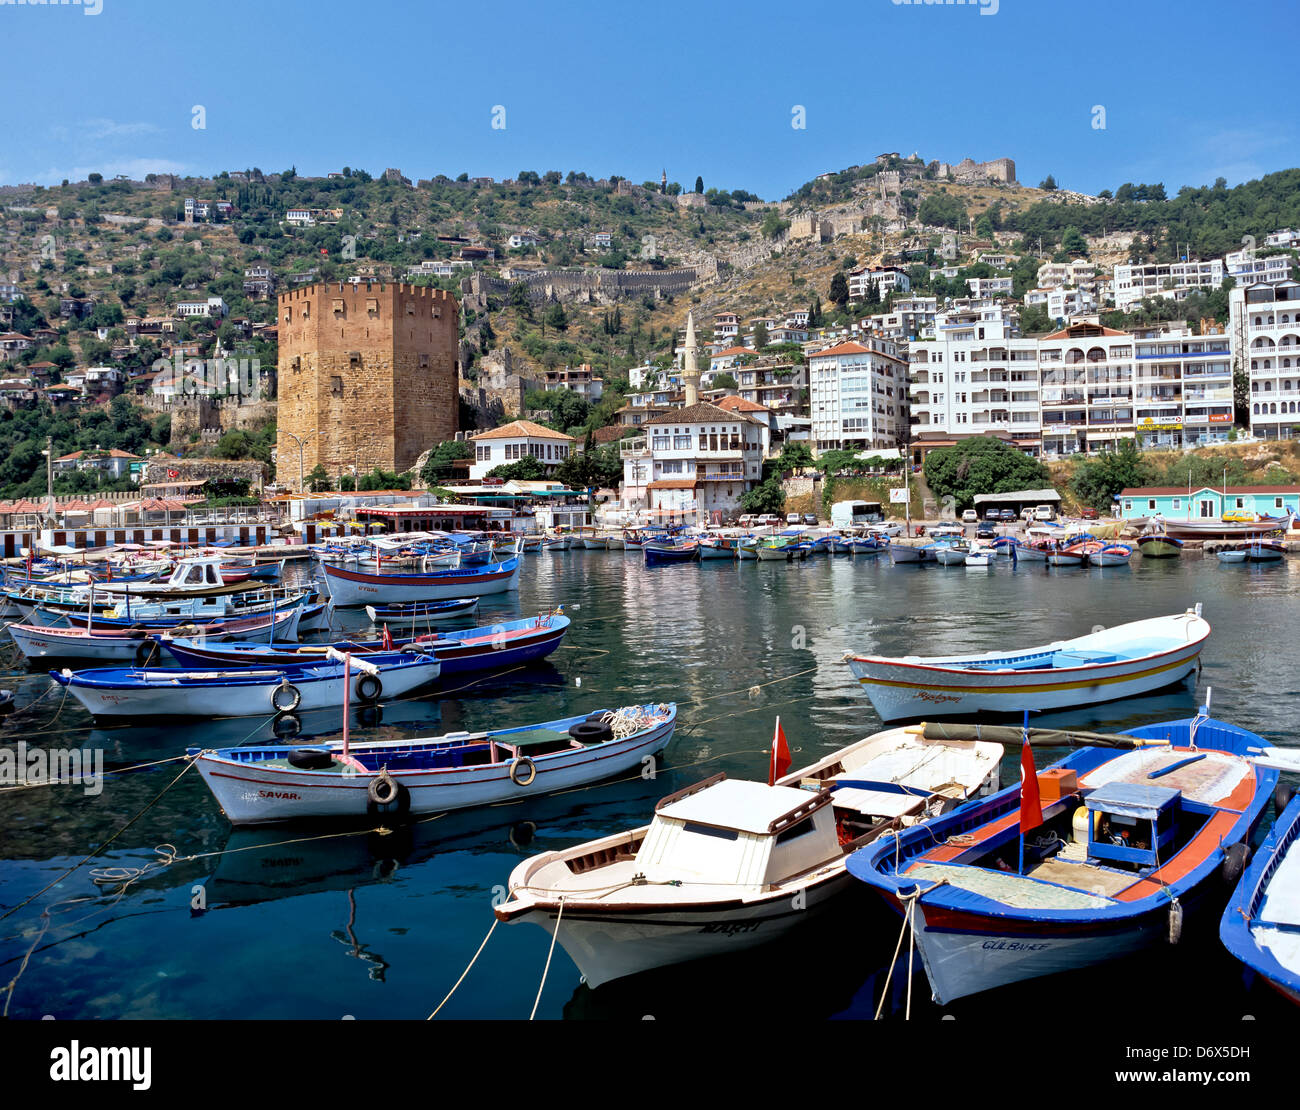 8559. Harbour, Red Tower and Castle, Alanya, Turkey, Europe - Stock Image